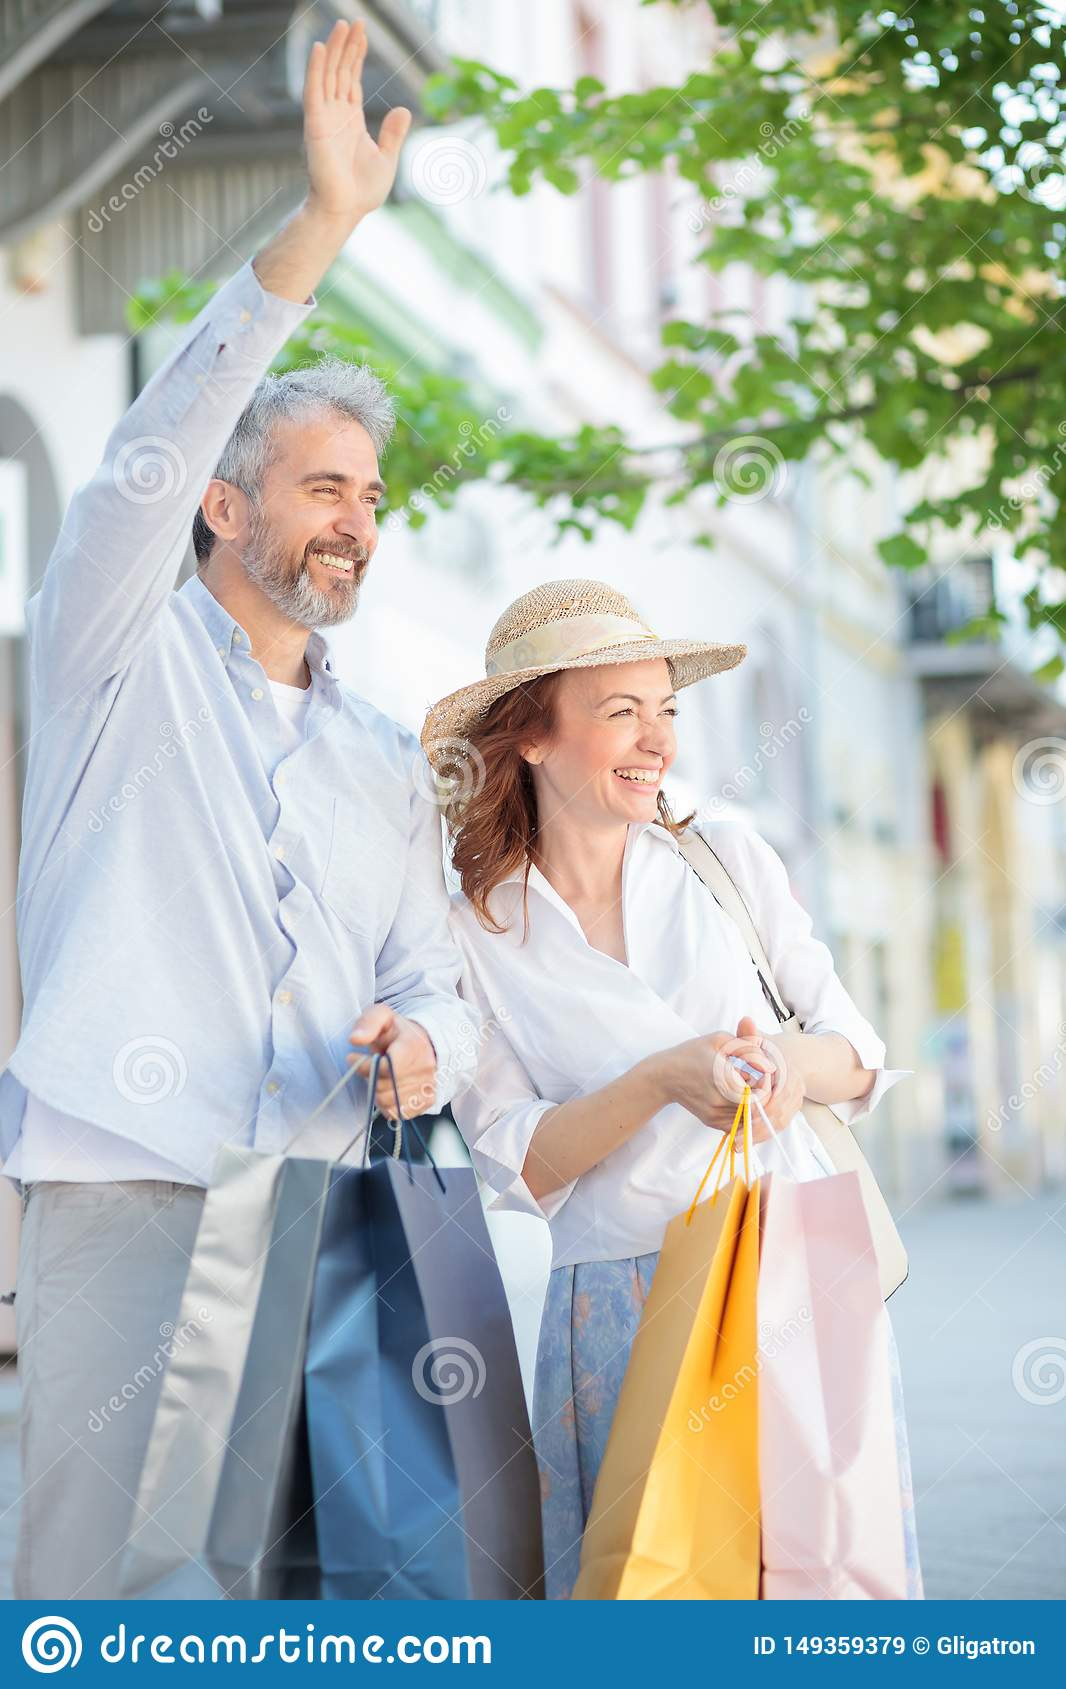 Mature couple returning from shopping, carrying full shopping bags and waving to friends